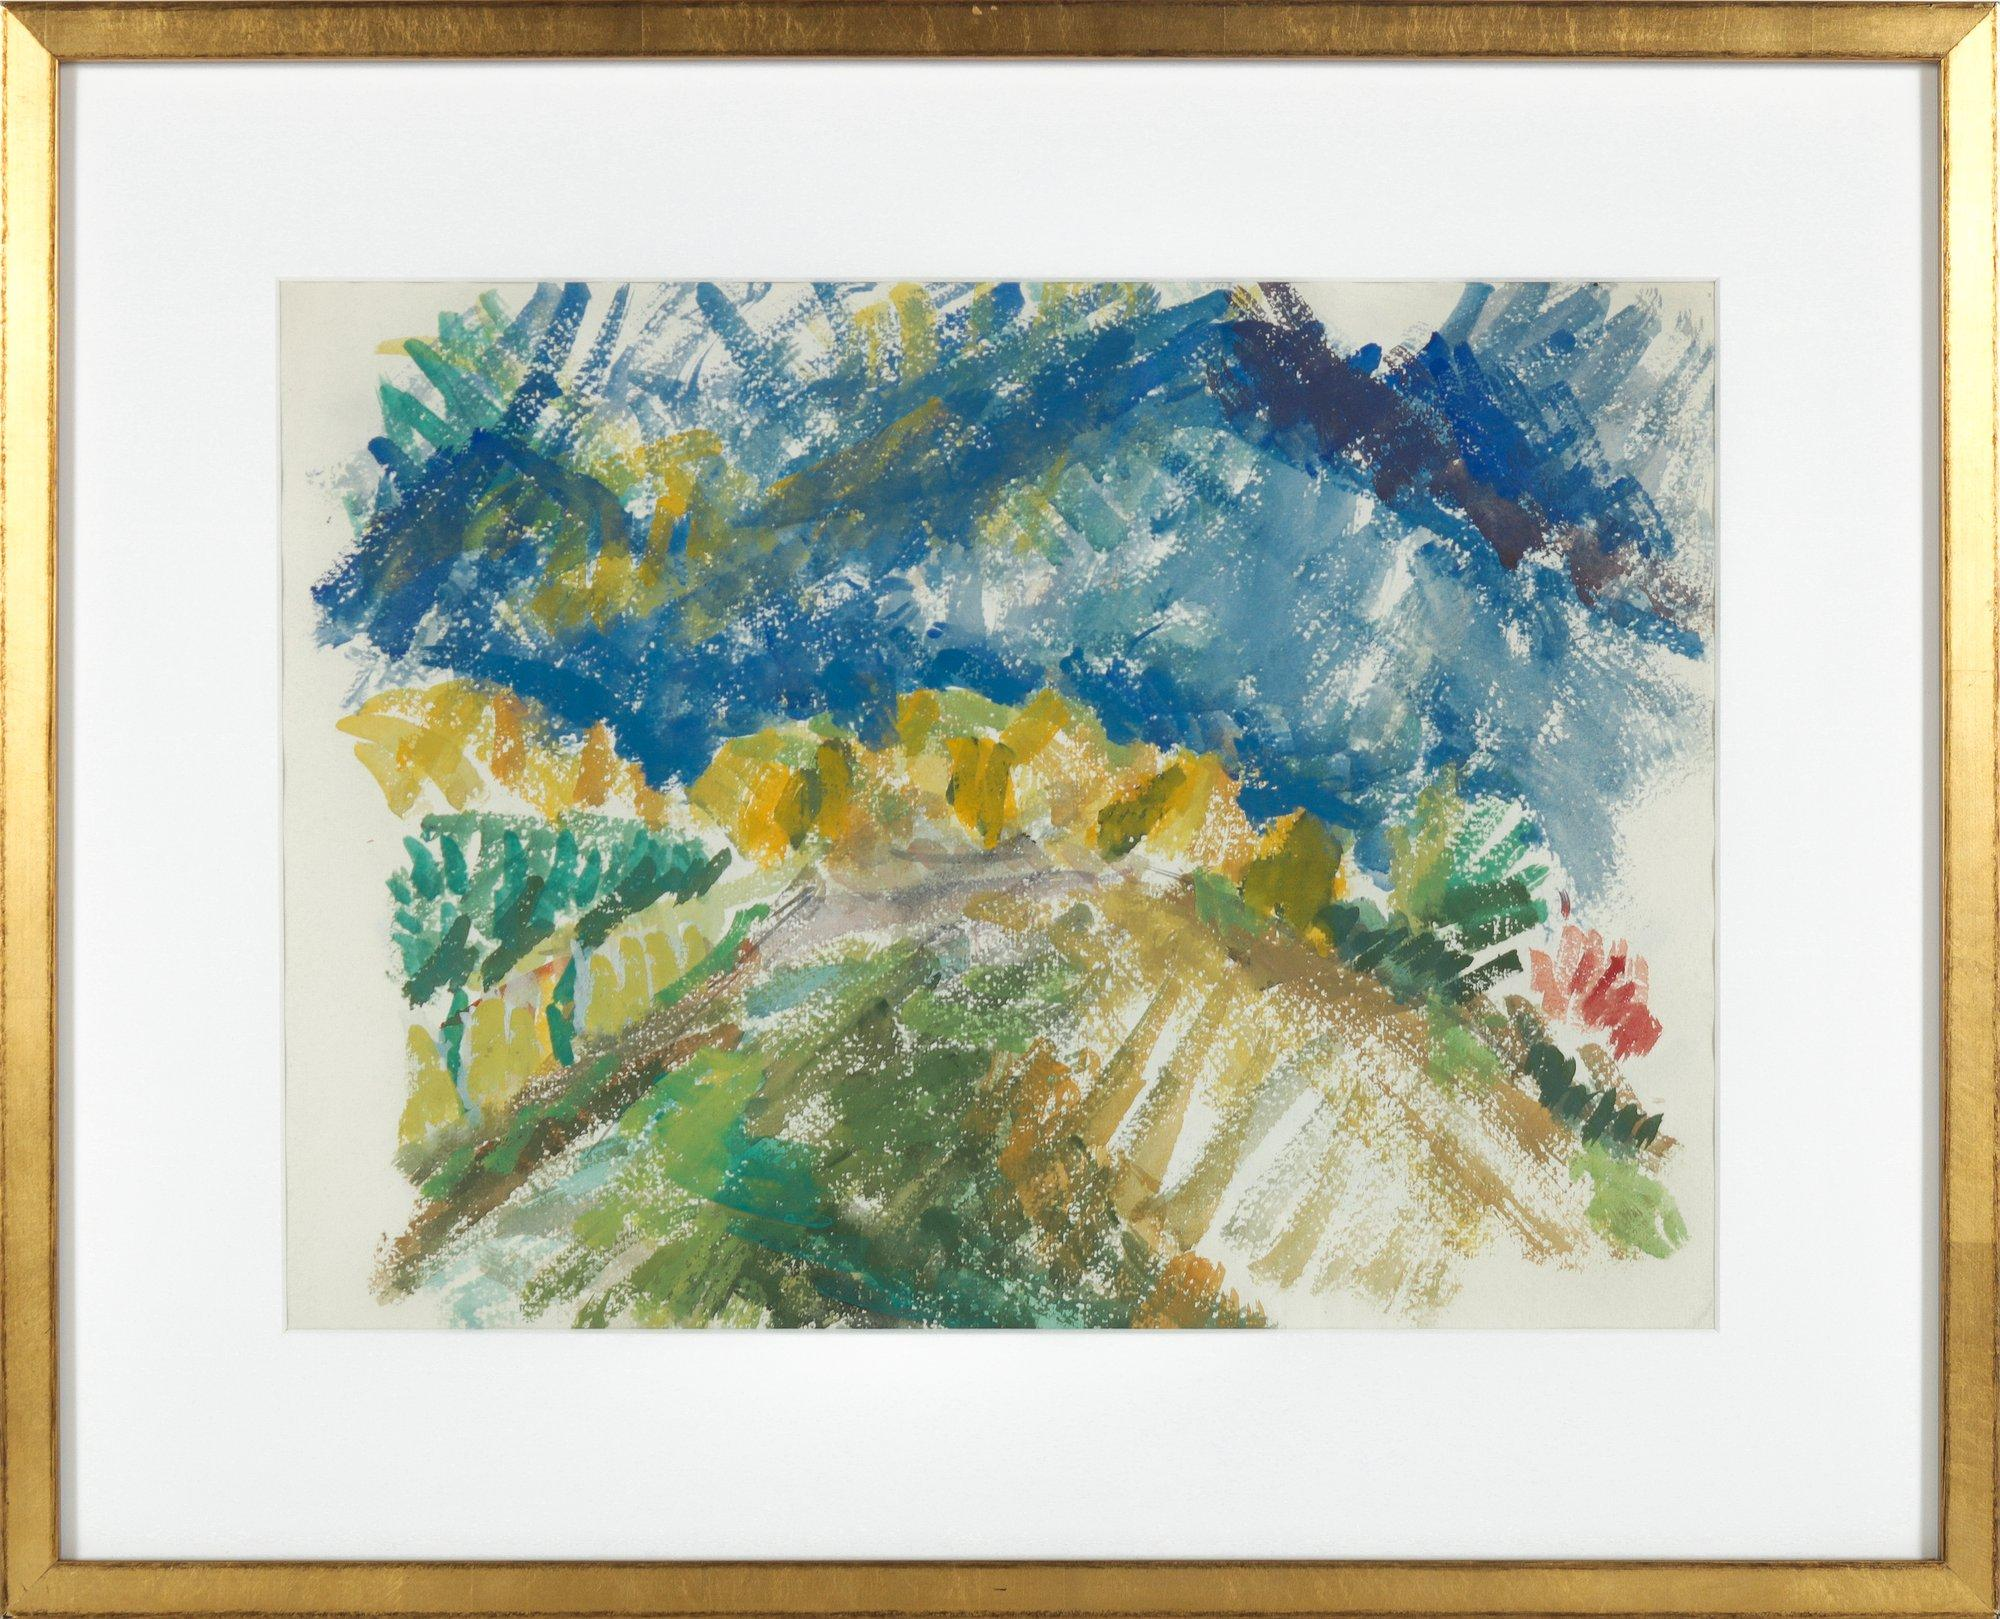 Expressive Landscape with Mountains Early-Mid 20th Century Watercolor